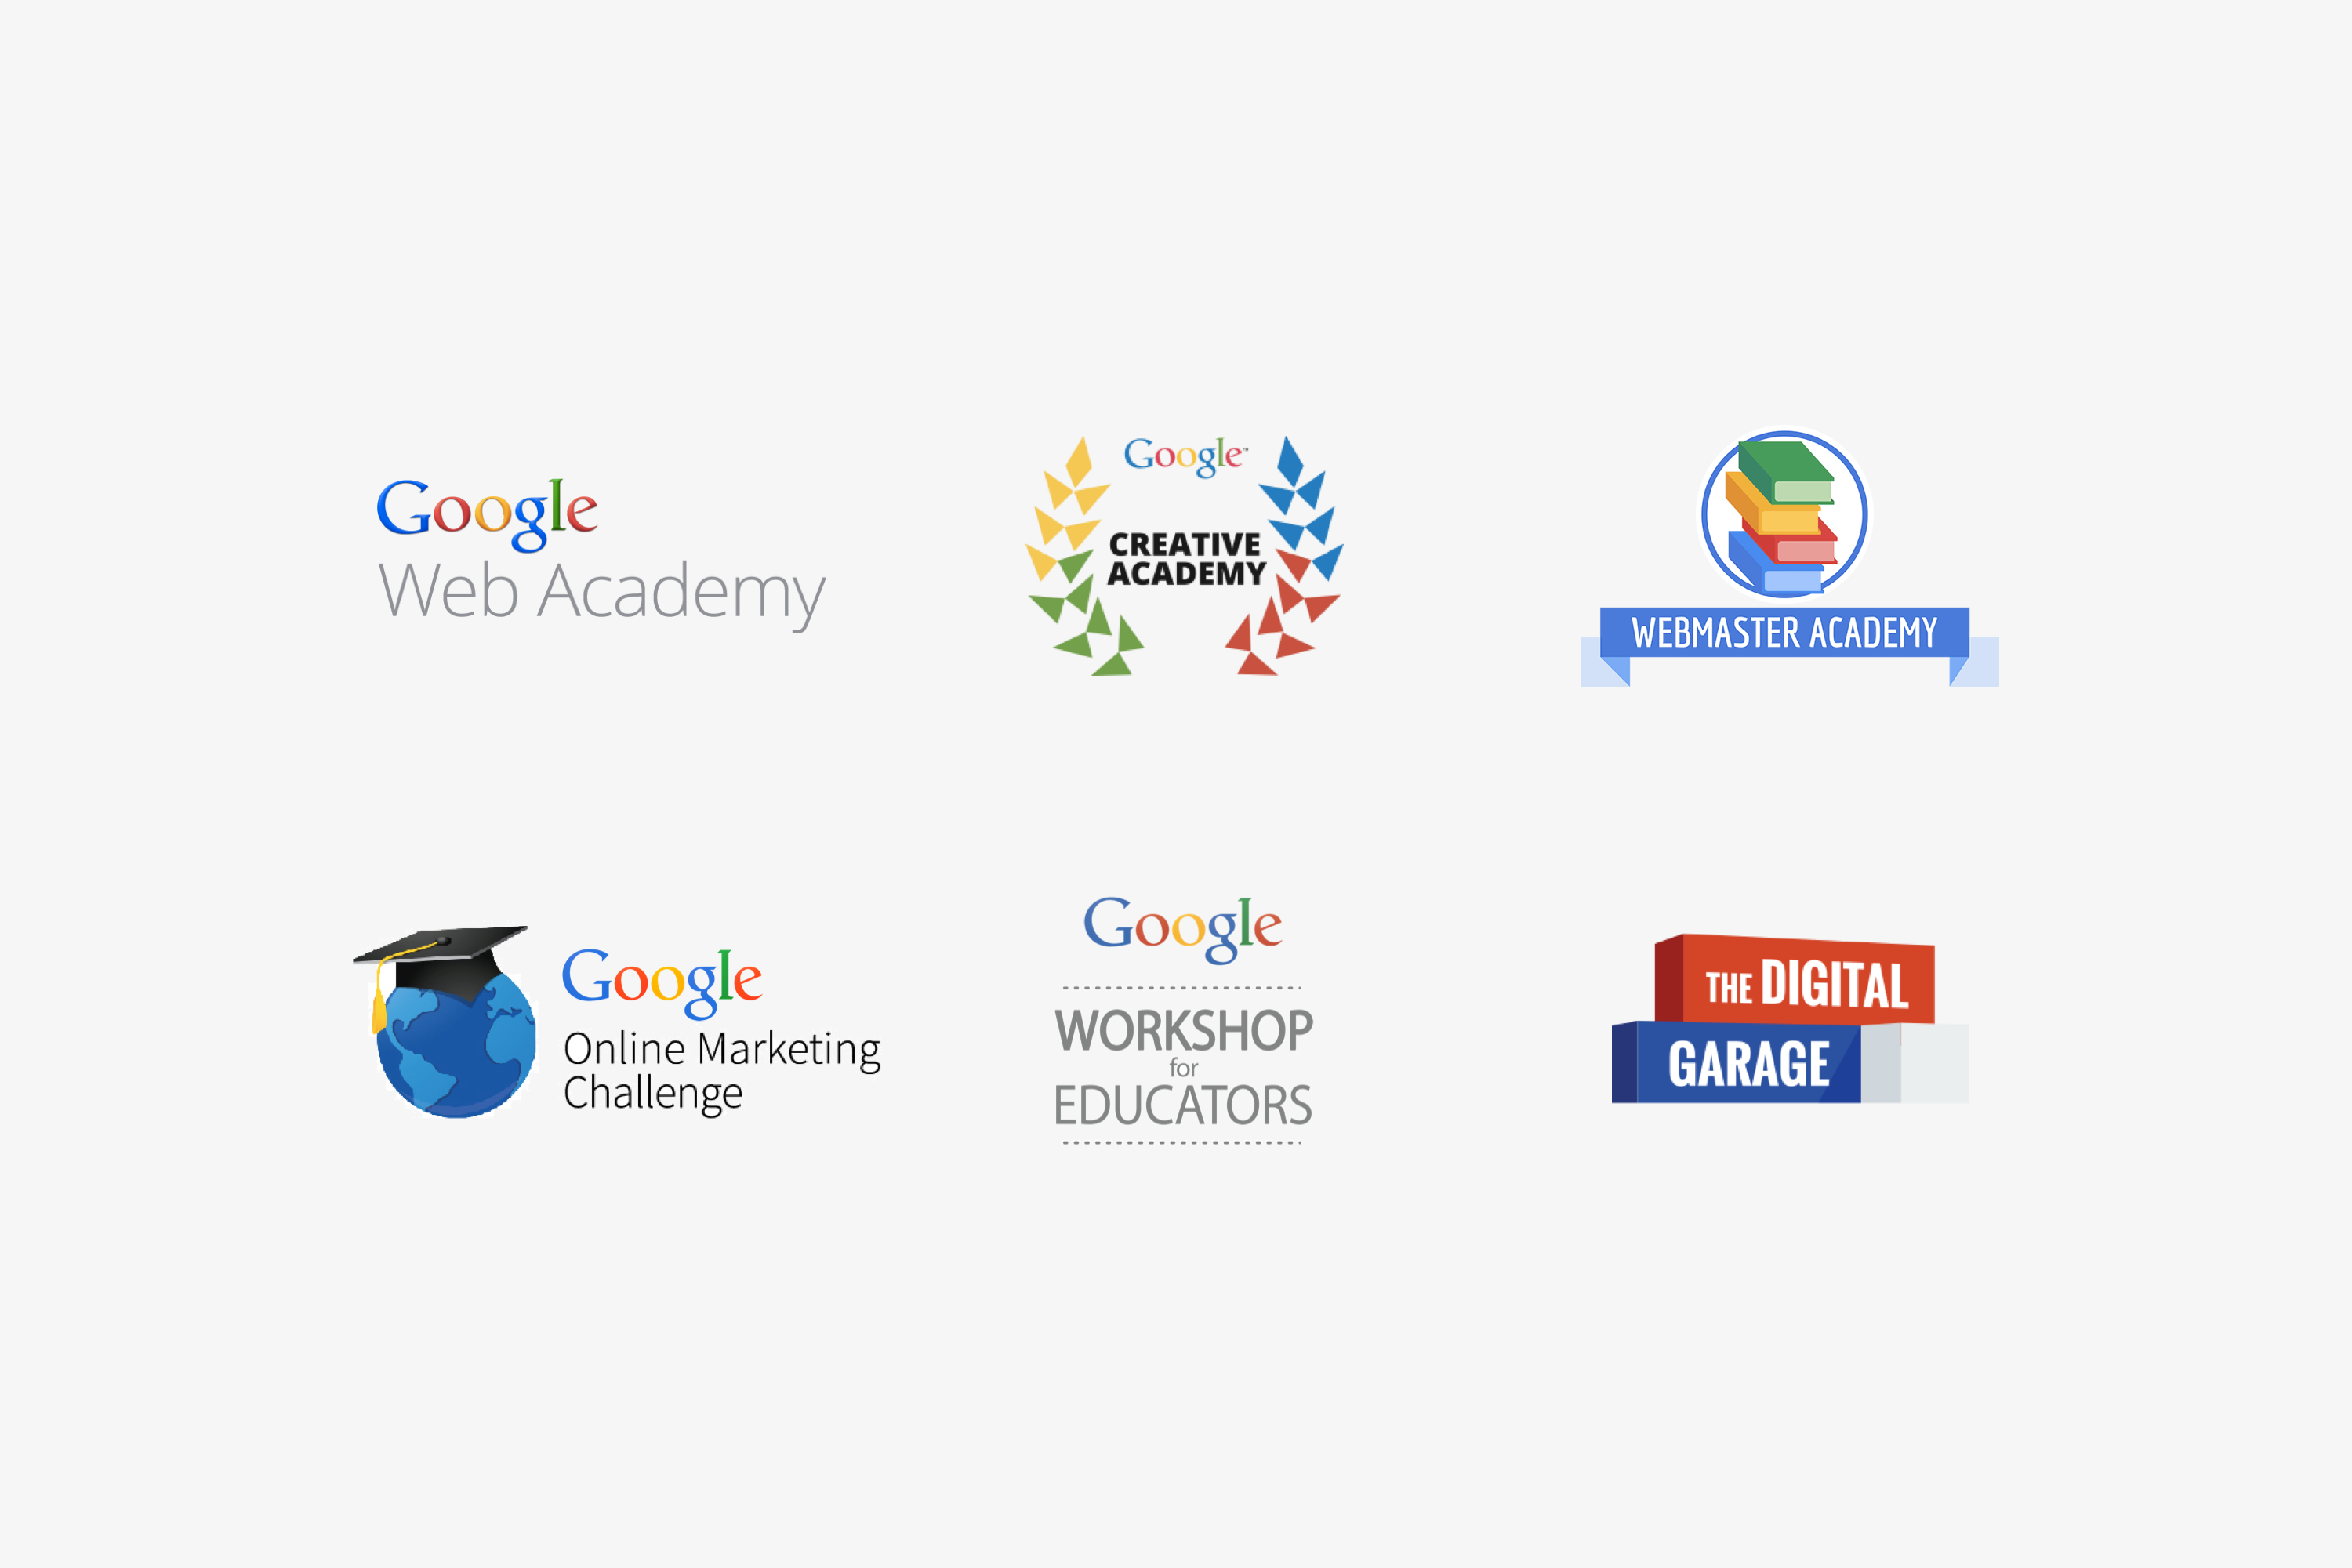 Google Digital Academy - Google Education Logos